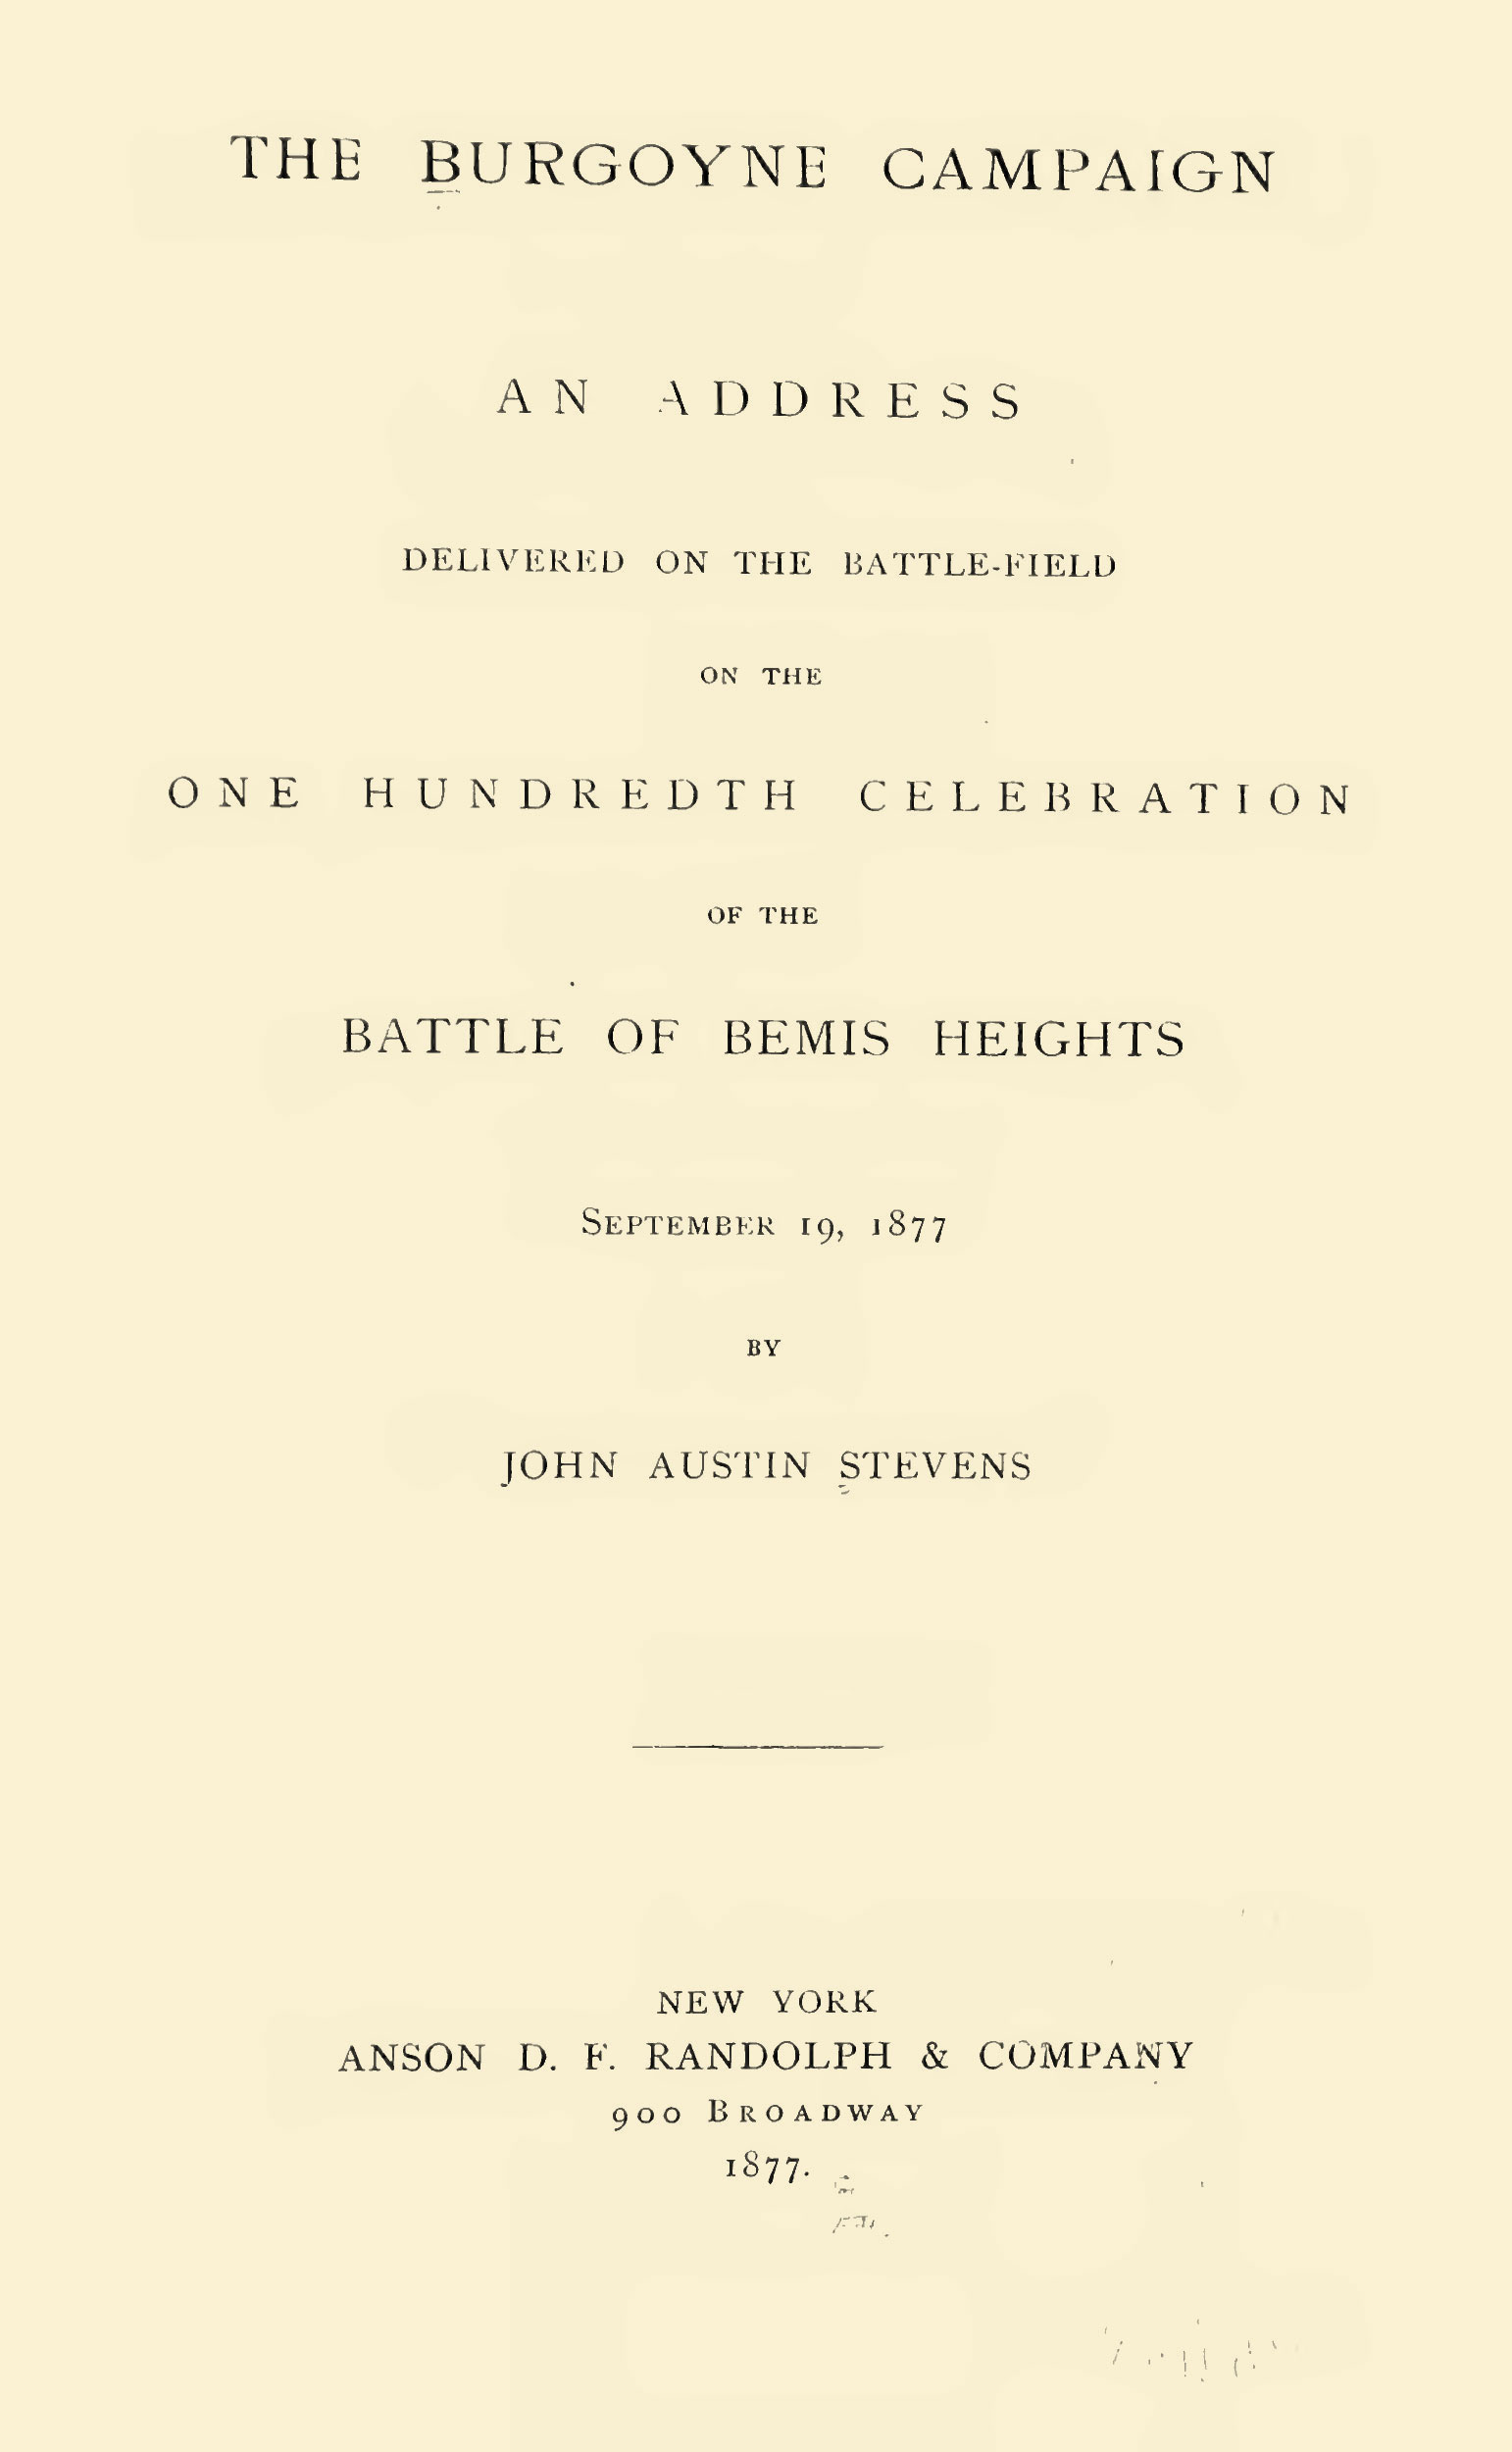 Stevens---Centennial-Celebration-Burgoyne-s-Surrender-7.jpg